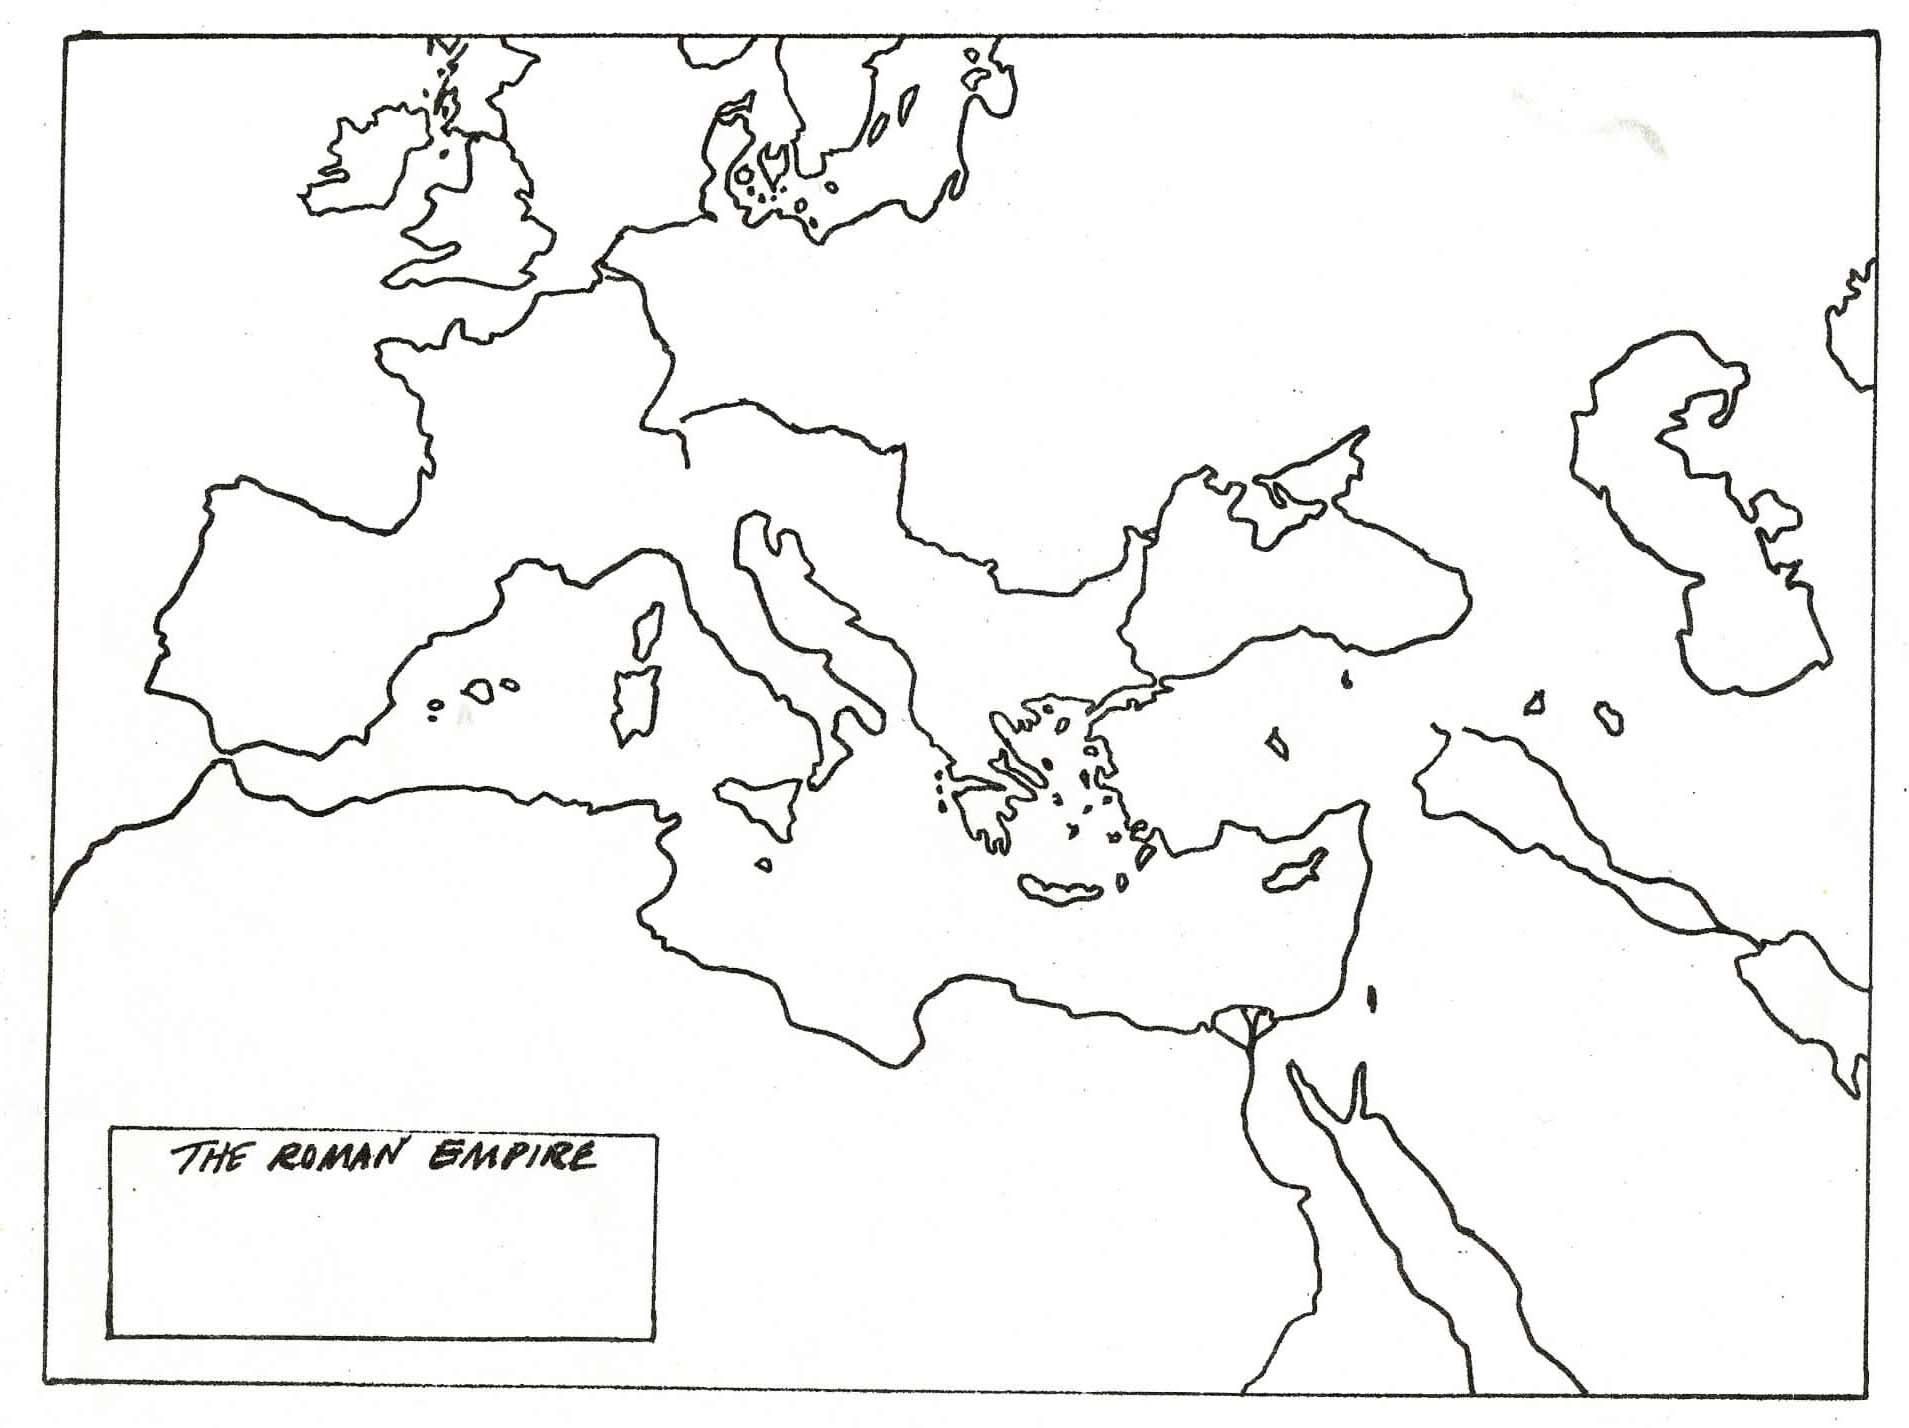 Blank Map Of Roman Empire CC History Pinterest Roman Empire - Unlabeled map of egypt